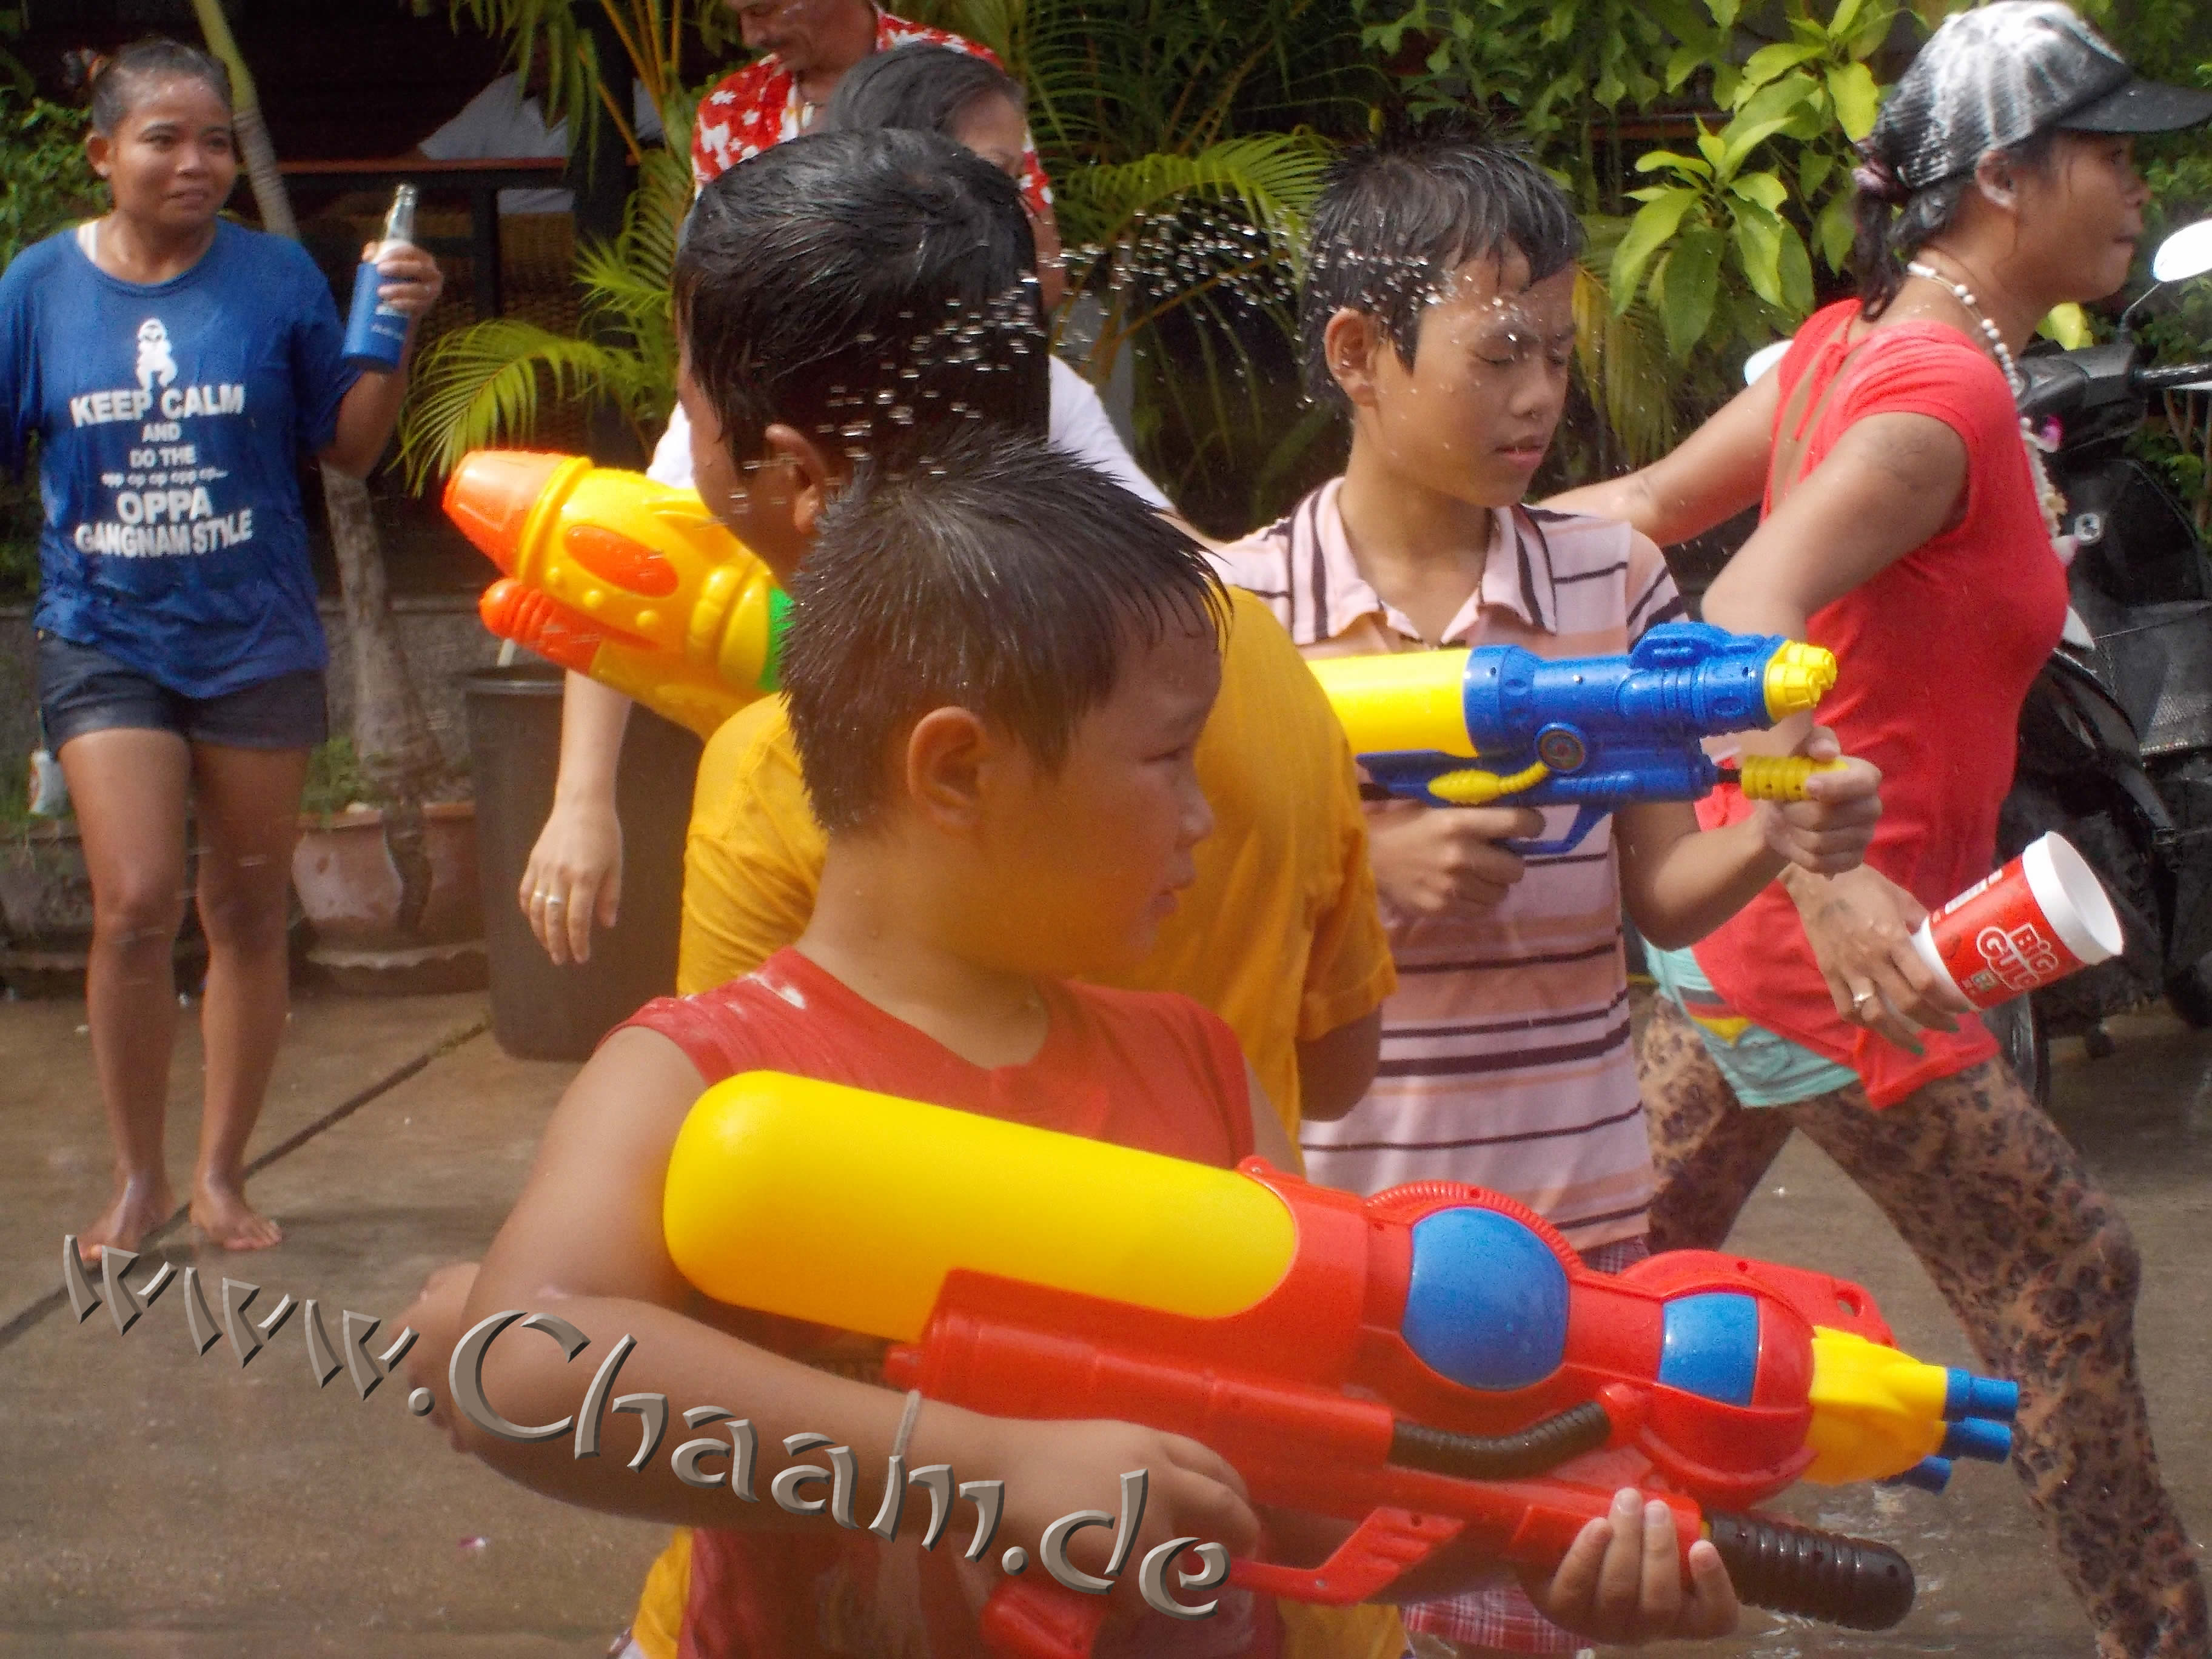 Kinder Songkran in Soi Bus Station